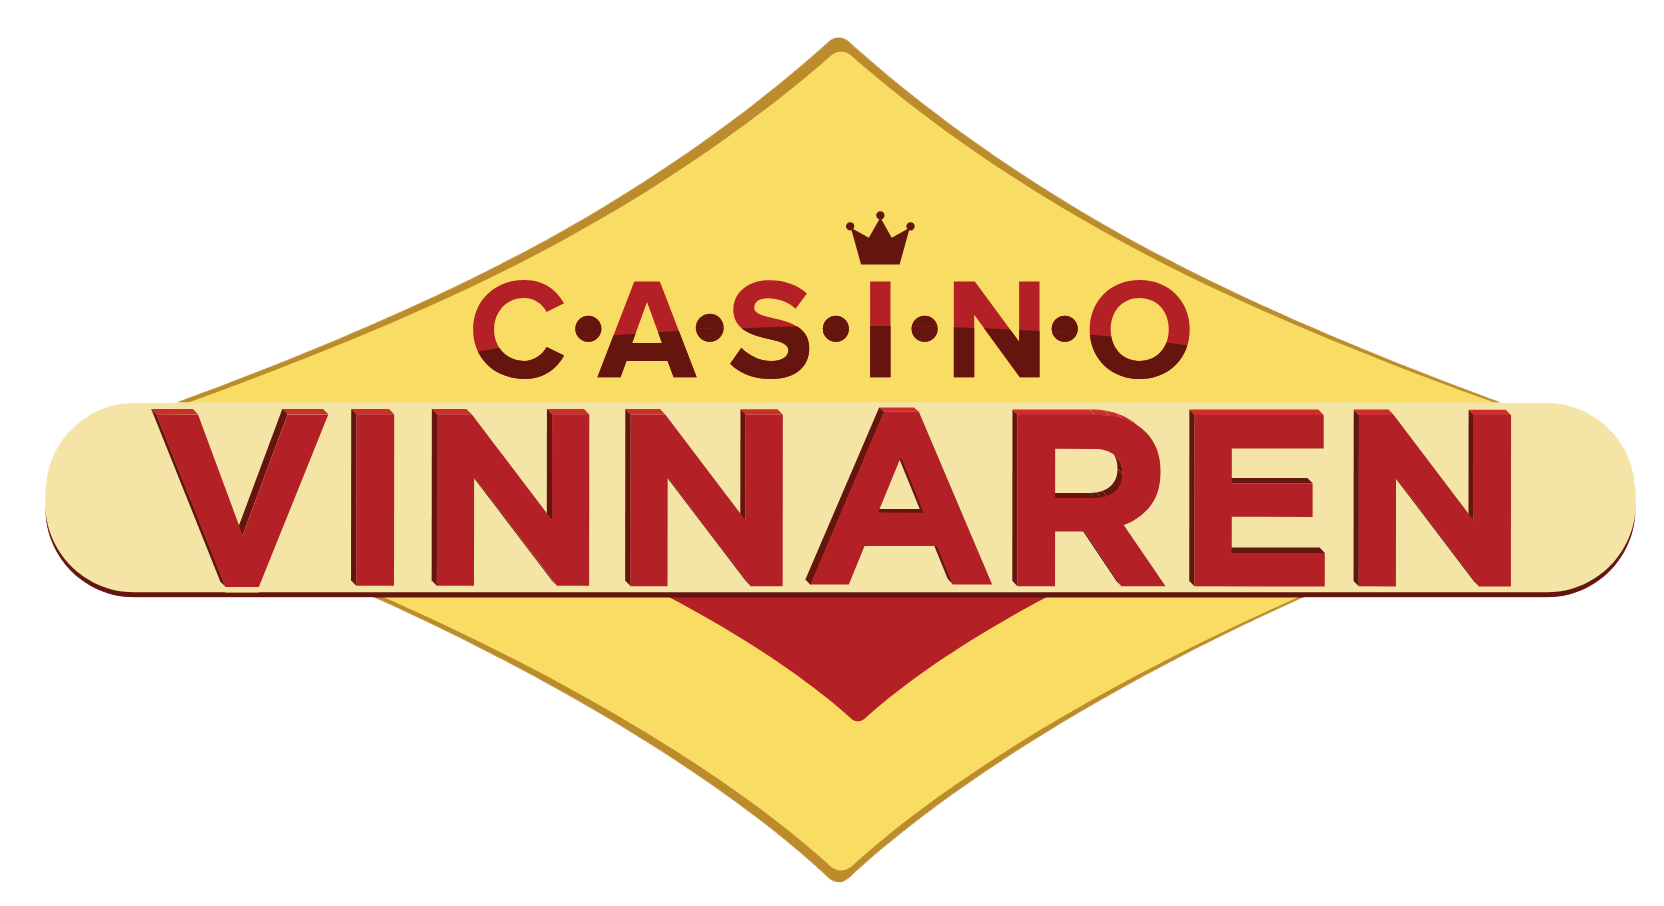 casinovinnaren